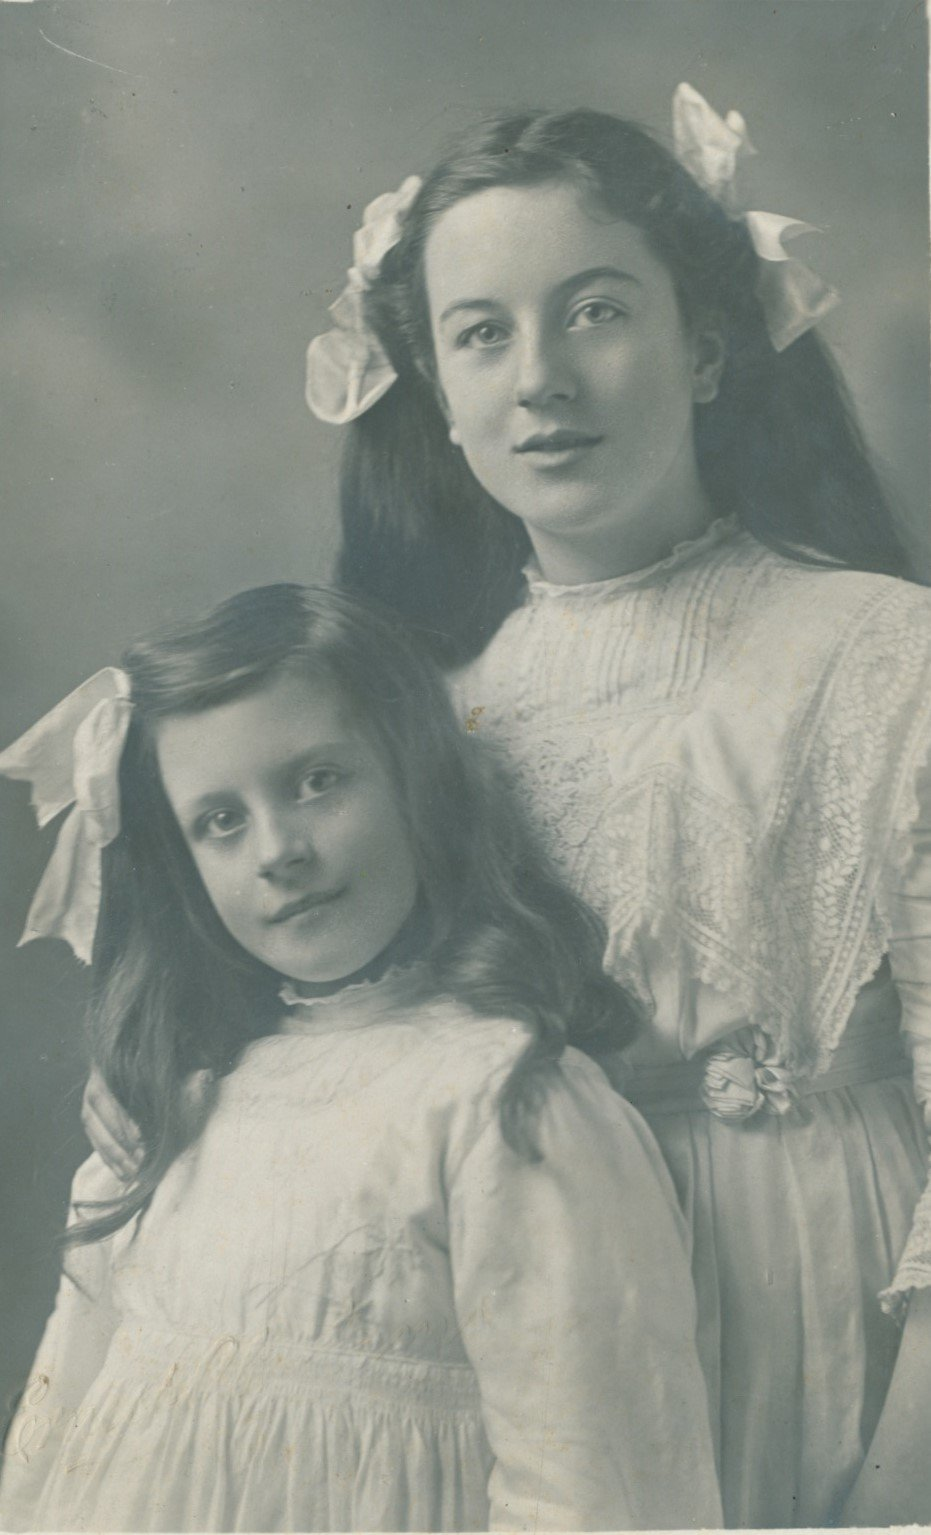 Young members of the Draper family